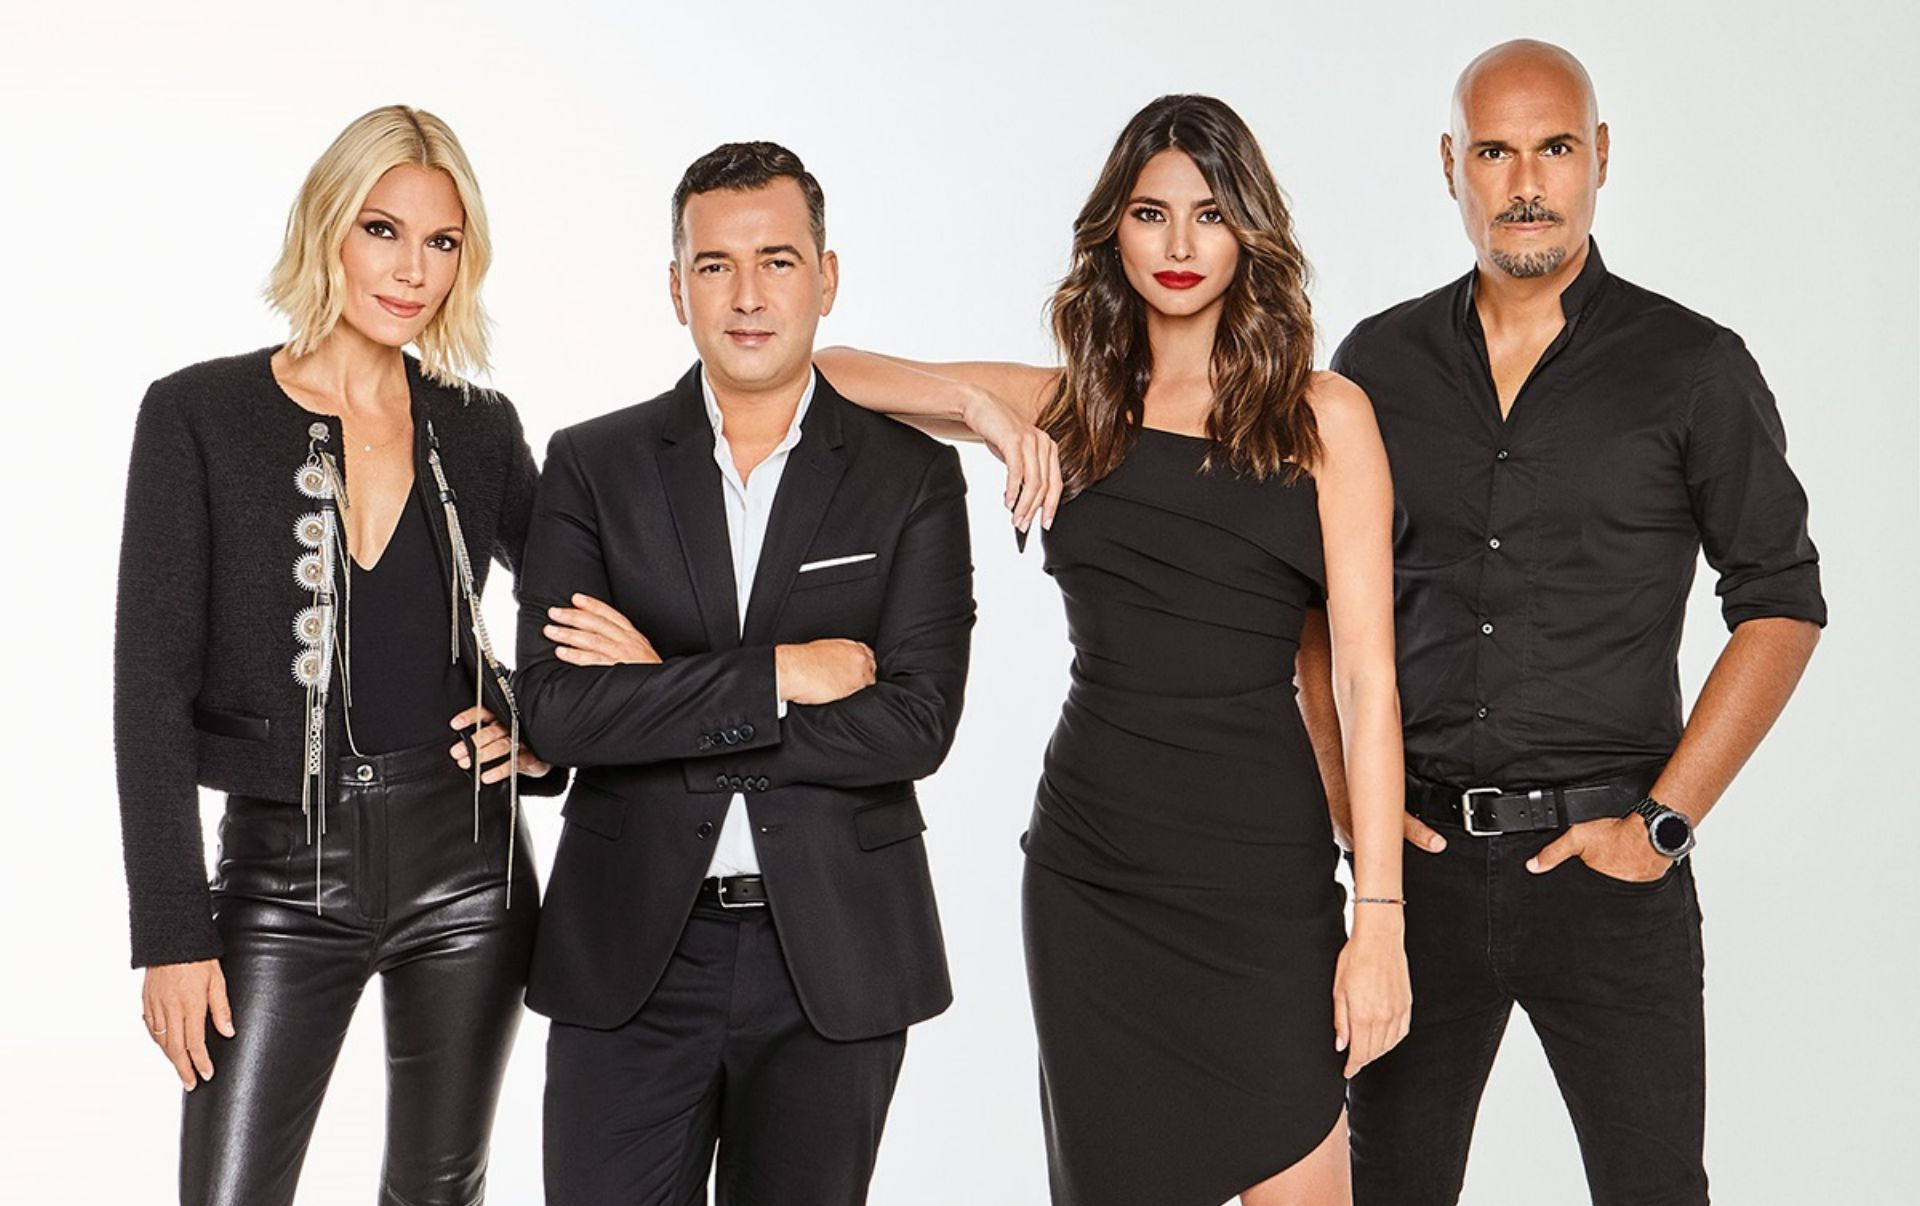 Ten popular Greek TV shows you can watch online for free